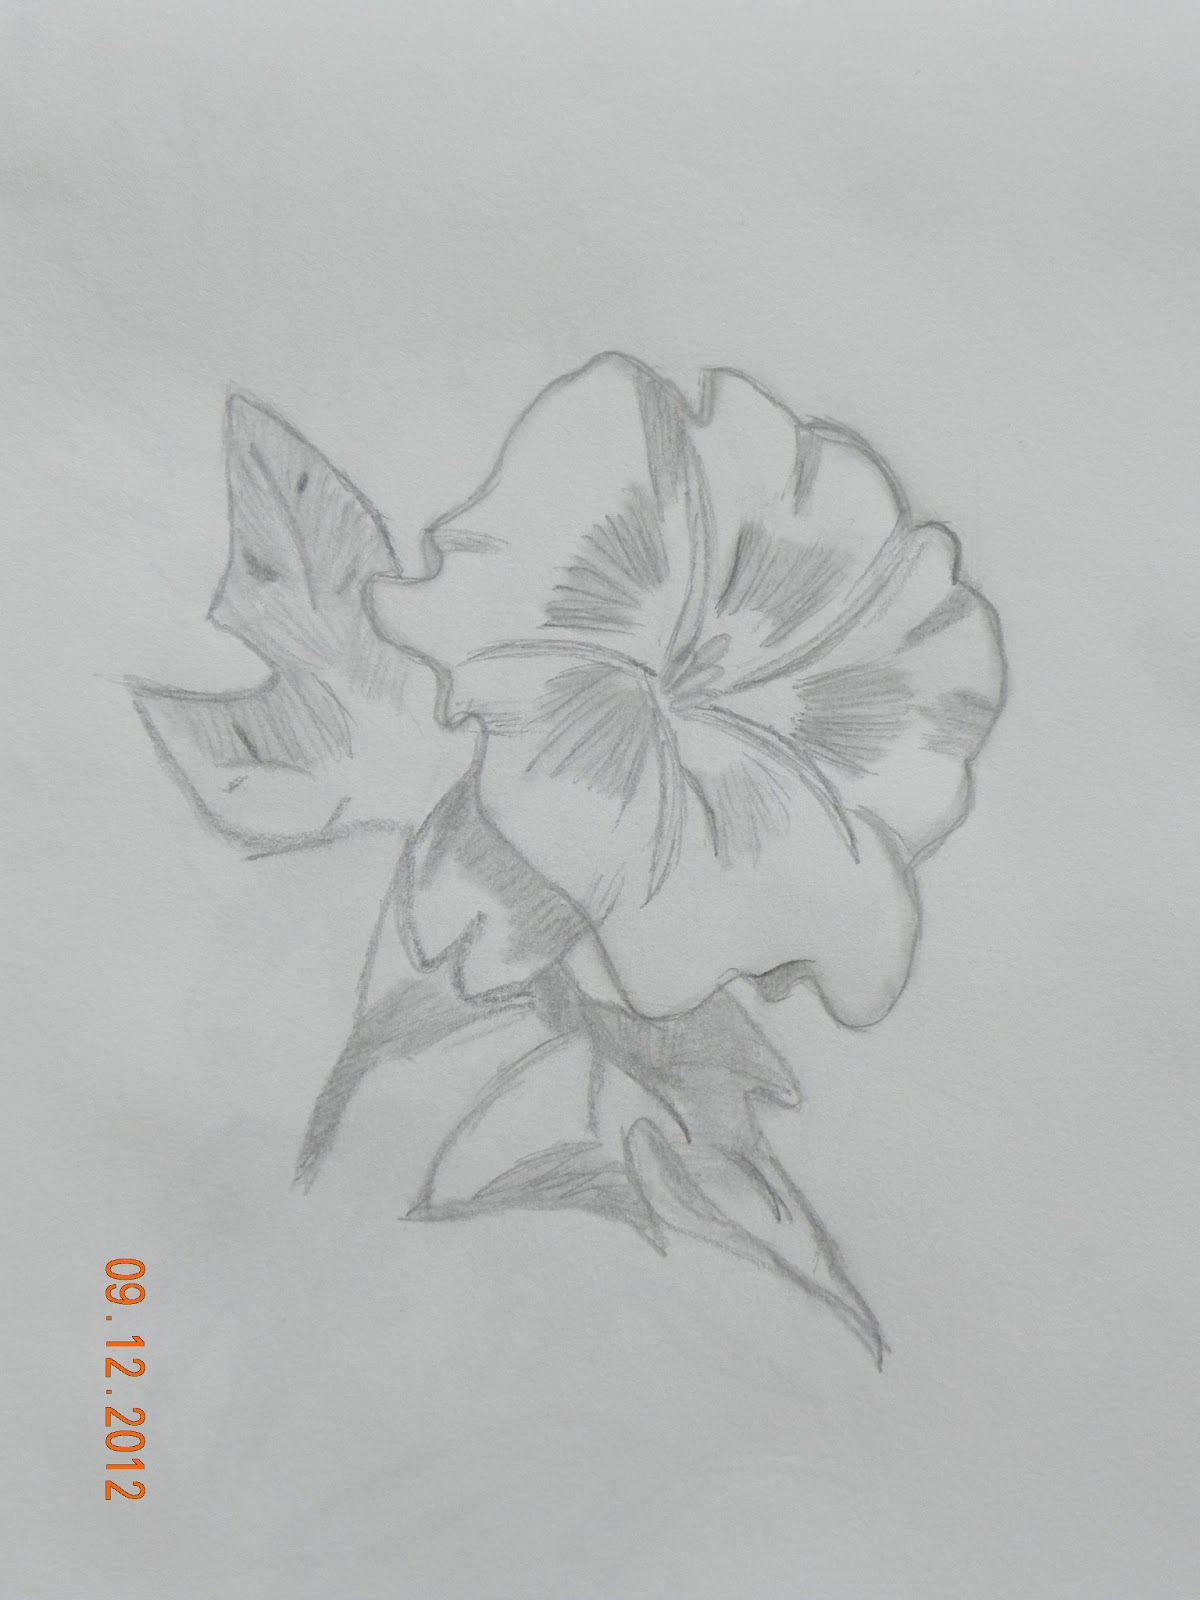 Art: Pencil Drawings - Flowers